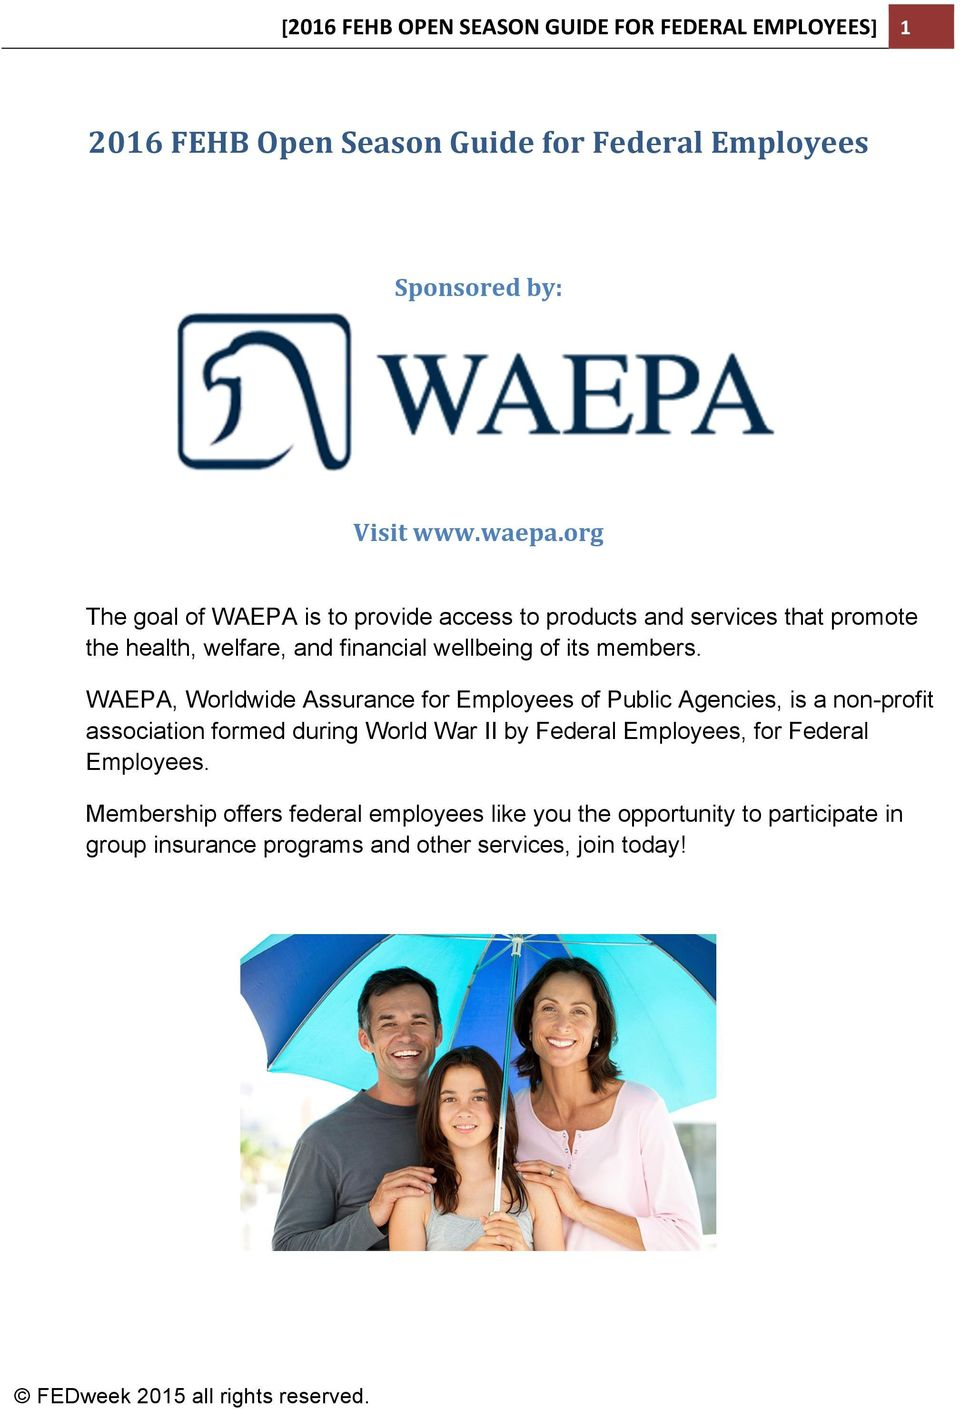 WAEPA, Worldwide Assurance for Employees of Public Agencies, is a non-profit association formed during World War II by Federal Employees, for